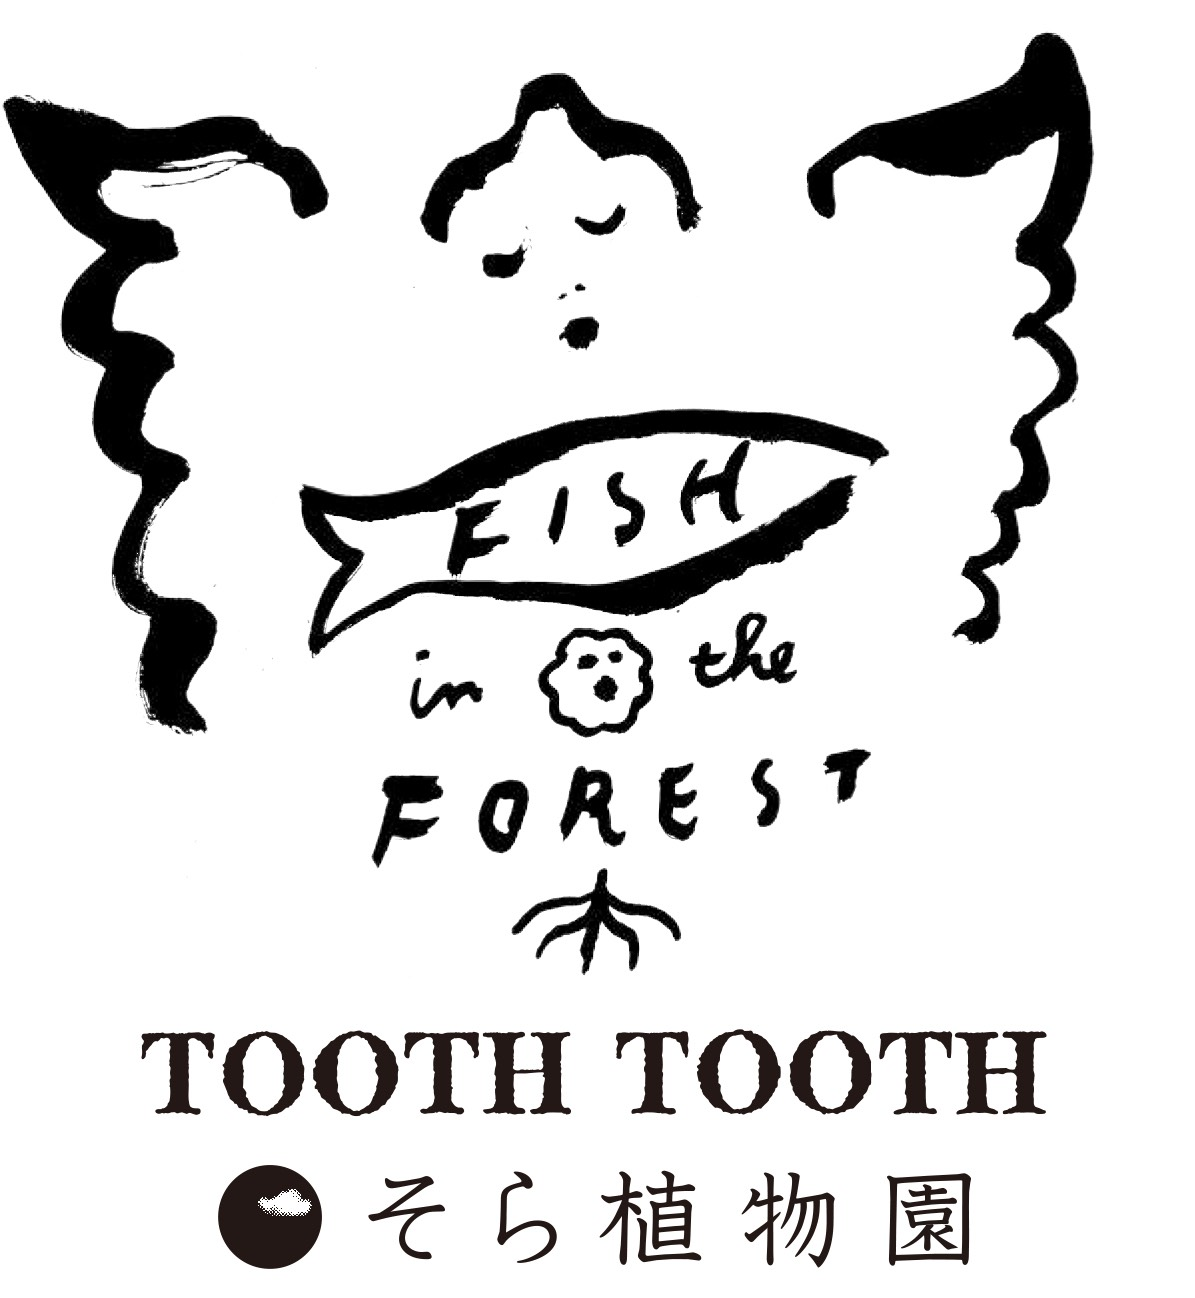 「FISH IN THE FOREST 〜TOOTH TOOTH x そら植物園〜」2017年2月17日(金)神戸メリケンパークにオープン!